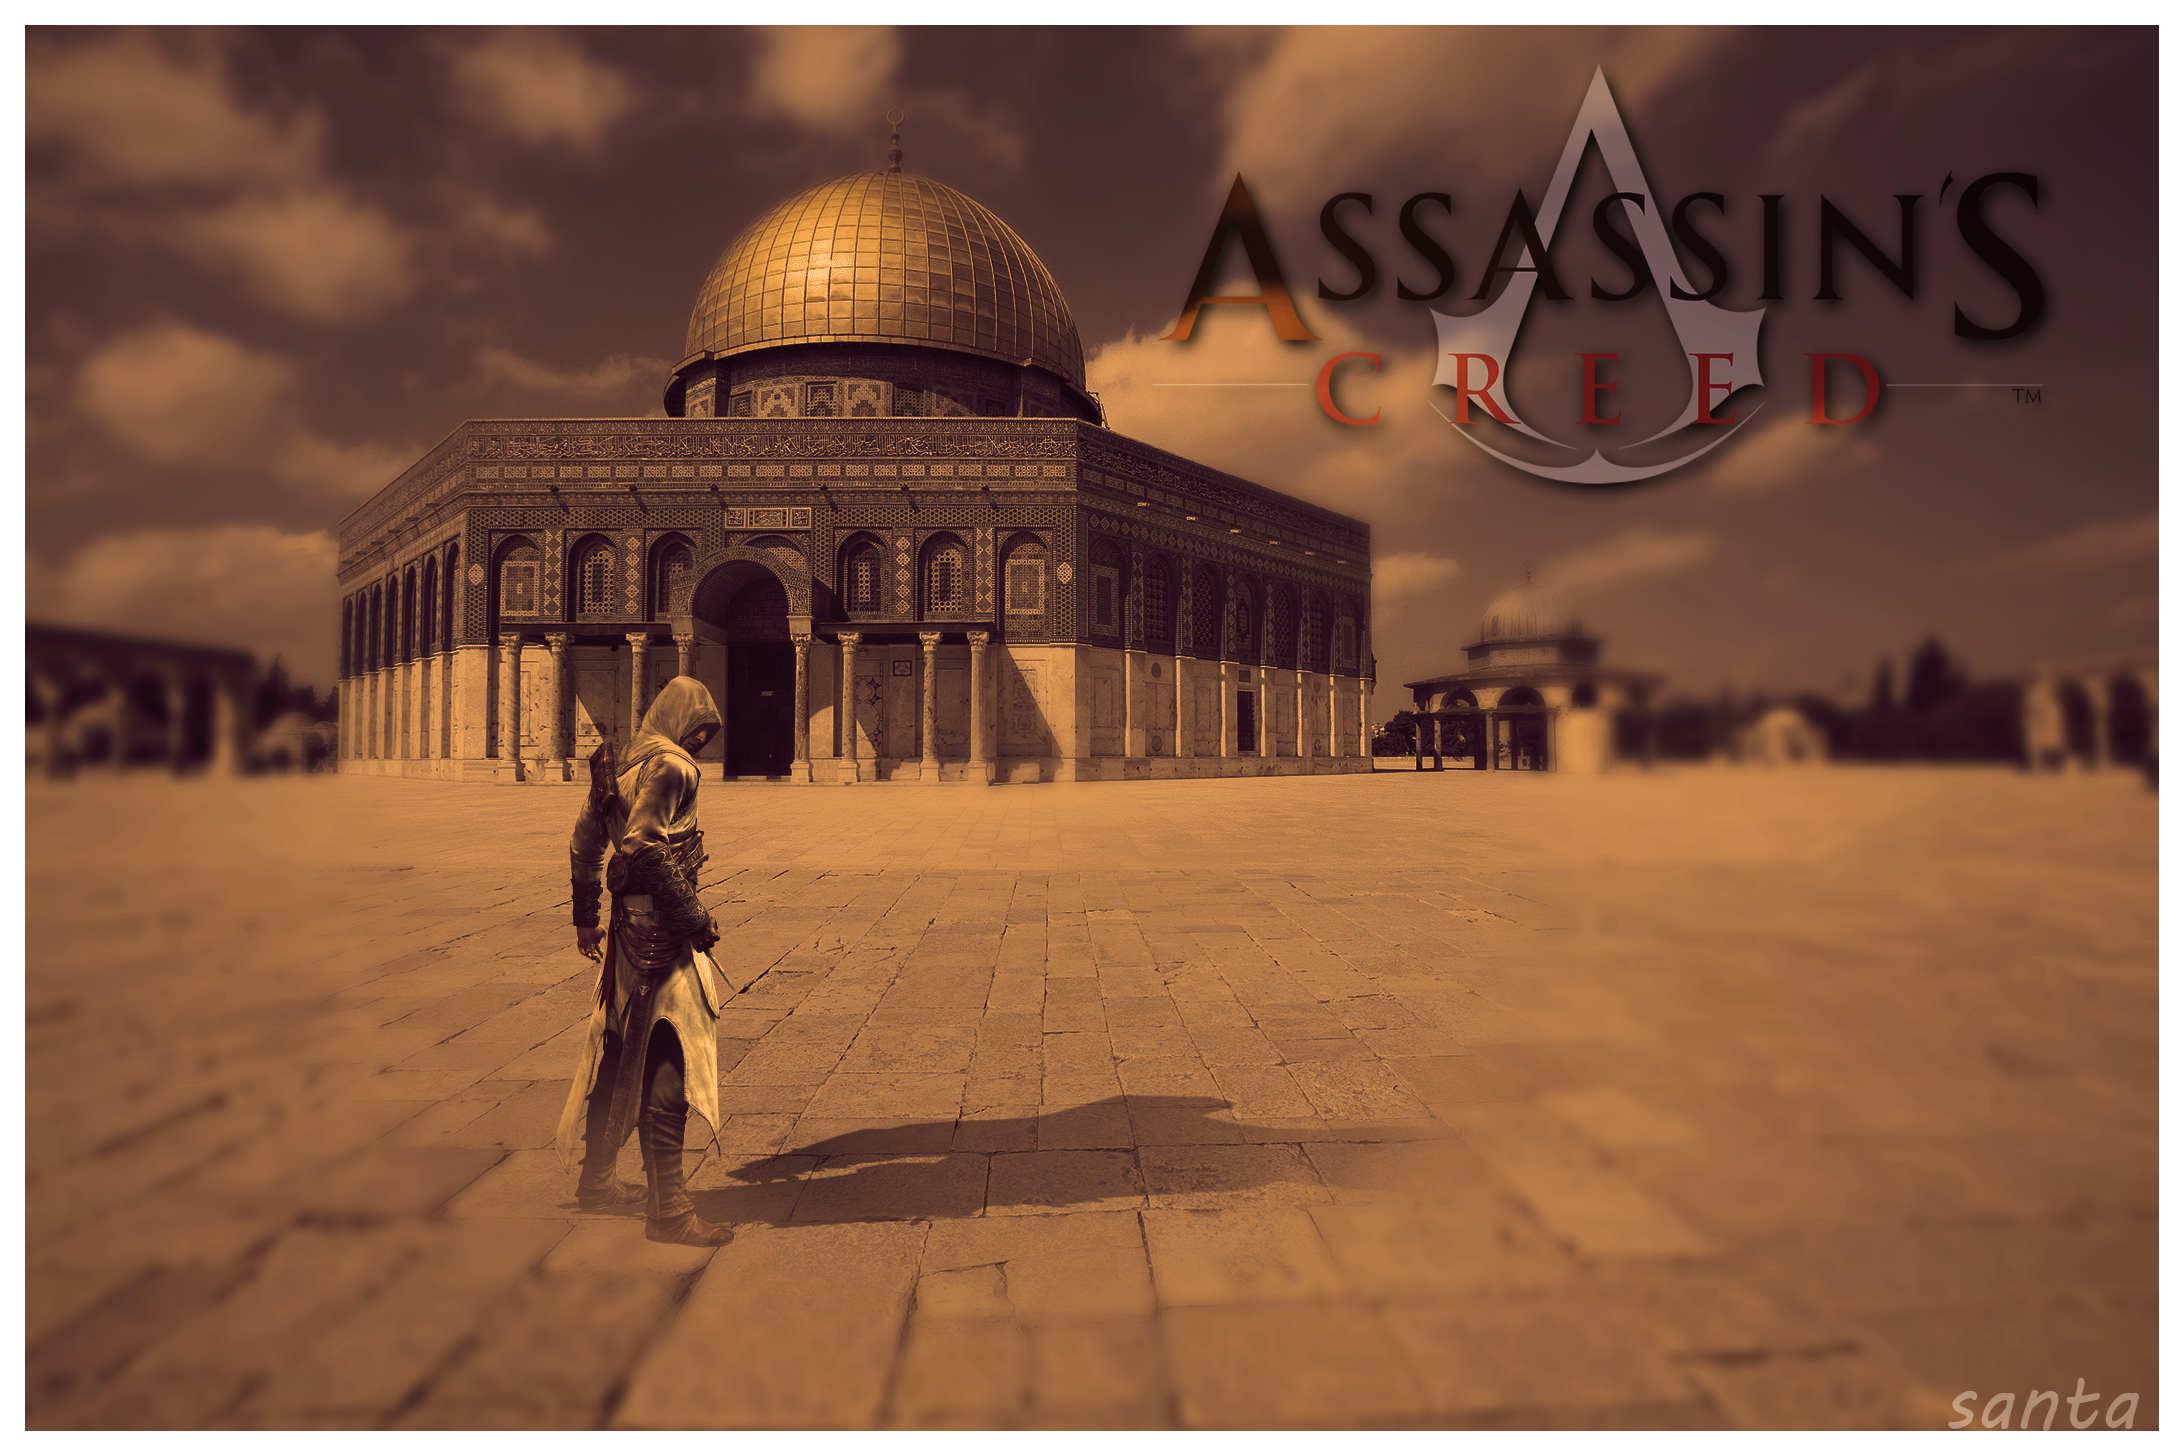 Assassins Creed Wallpaper By SantaKlau